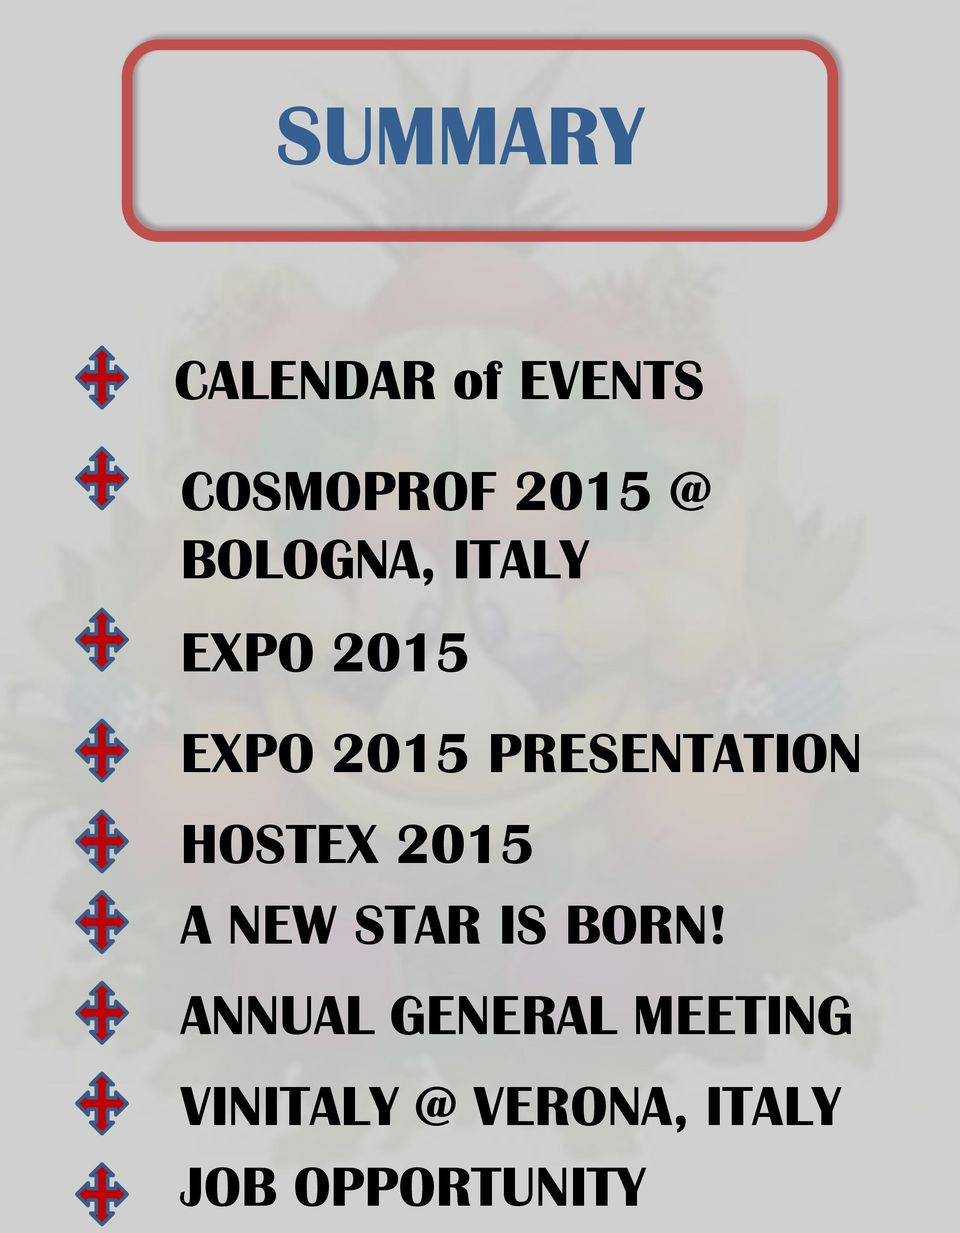 PRESENTATION HOSTEX 2015 A NEW STAR IS BORN!